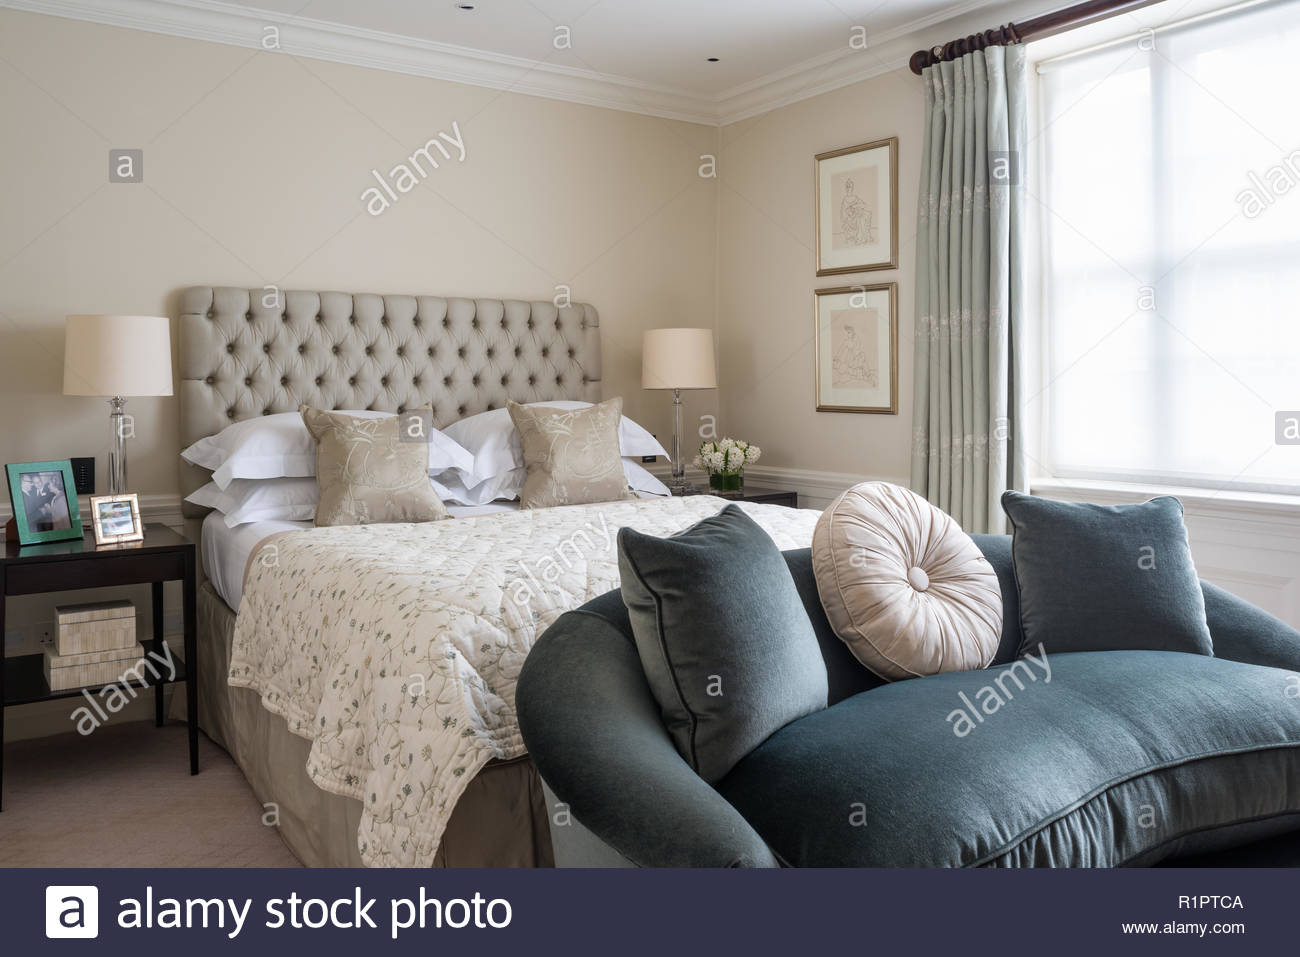 Dwelling Interior Stock Photos & Dwelling Interior Stock